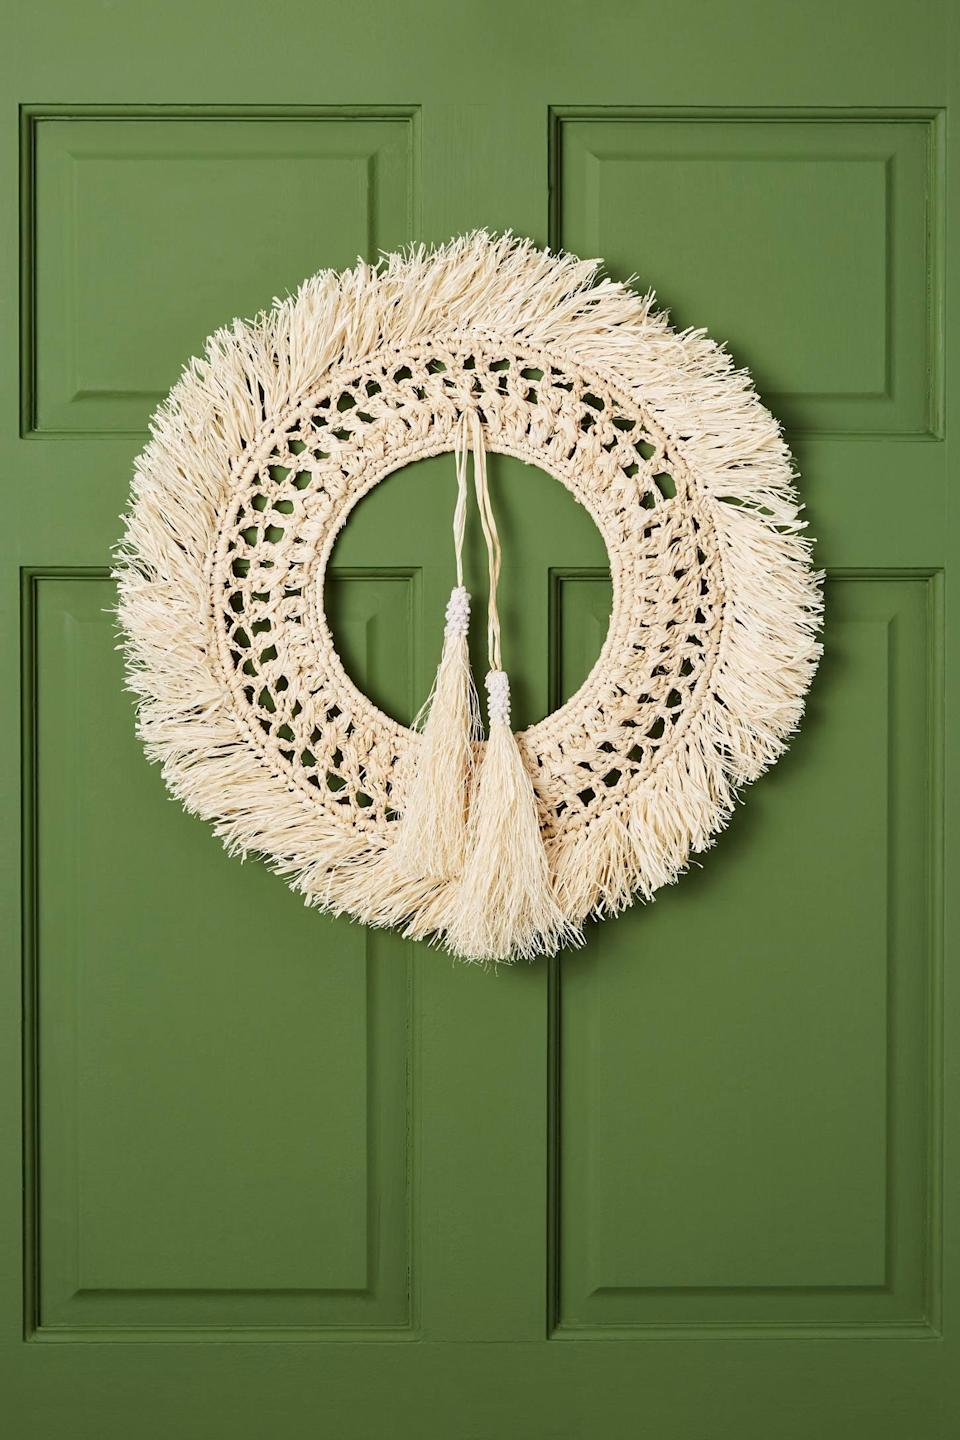 """<p>The natural style of the <a href=""""https://www.popsugar.com/buy/Meadow-Woven-Wreath-490562?p_name=Meadow%20Woven%20Wreath&retailer=anthropologie.com&pid=490562&price=68&evar1=casa%3Aus&evar9=46615300&evar98=https%3A%2F%2Fwww.popsugar.com%2Fhome%2Fphoto-gallery%2F46615300%2Fimage%2F46615433%2FMeadow-Woven-Wreath&list1=shopping%2Canthropologie%2Choliday%2Cchristmas%2Cchristmas%20decorations%2Choliday%20decor%2Chome%20shopping&prop13=mobile&pdata=1"""" rel=""""nofollow noopener"""" class=""""link rapid-noclick-resp"""" target=""""_blank"""" data-ylk=""""slk:Meadow Woven Wreath"""">Meadow Woven Wreath</a> ($68) can be displayed year-round, no matter the season.</p>"""